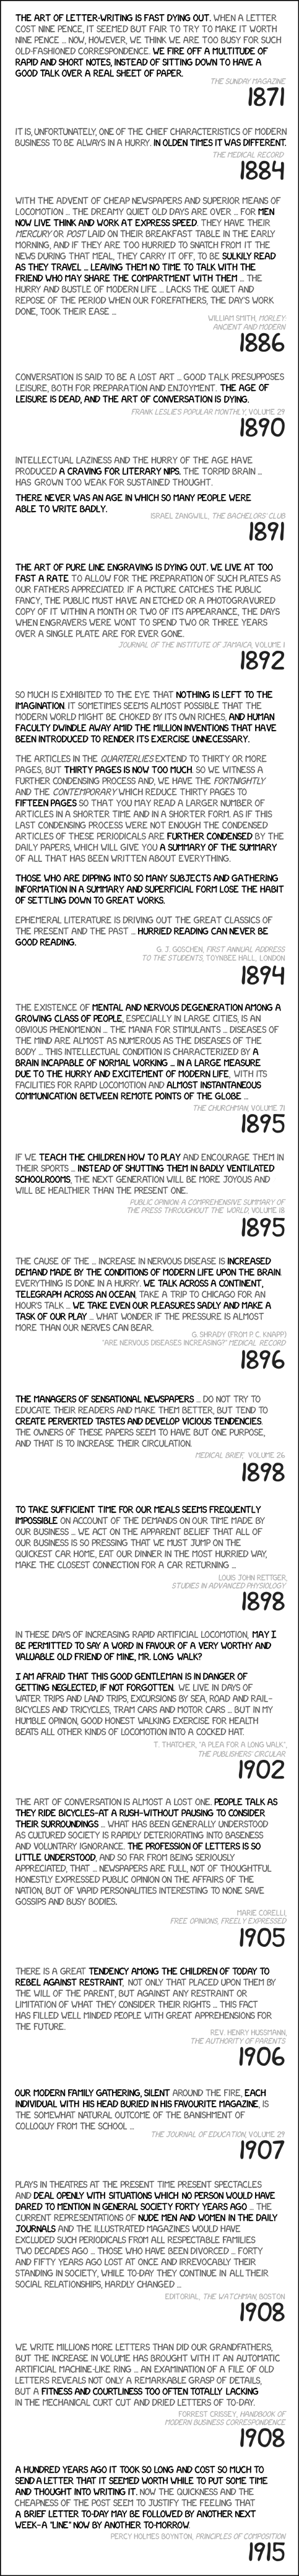 XKCD pace of modern life